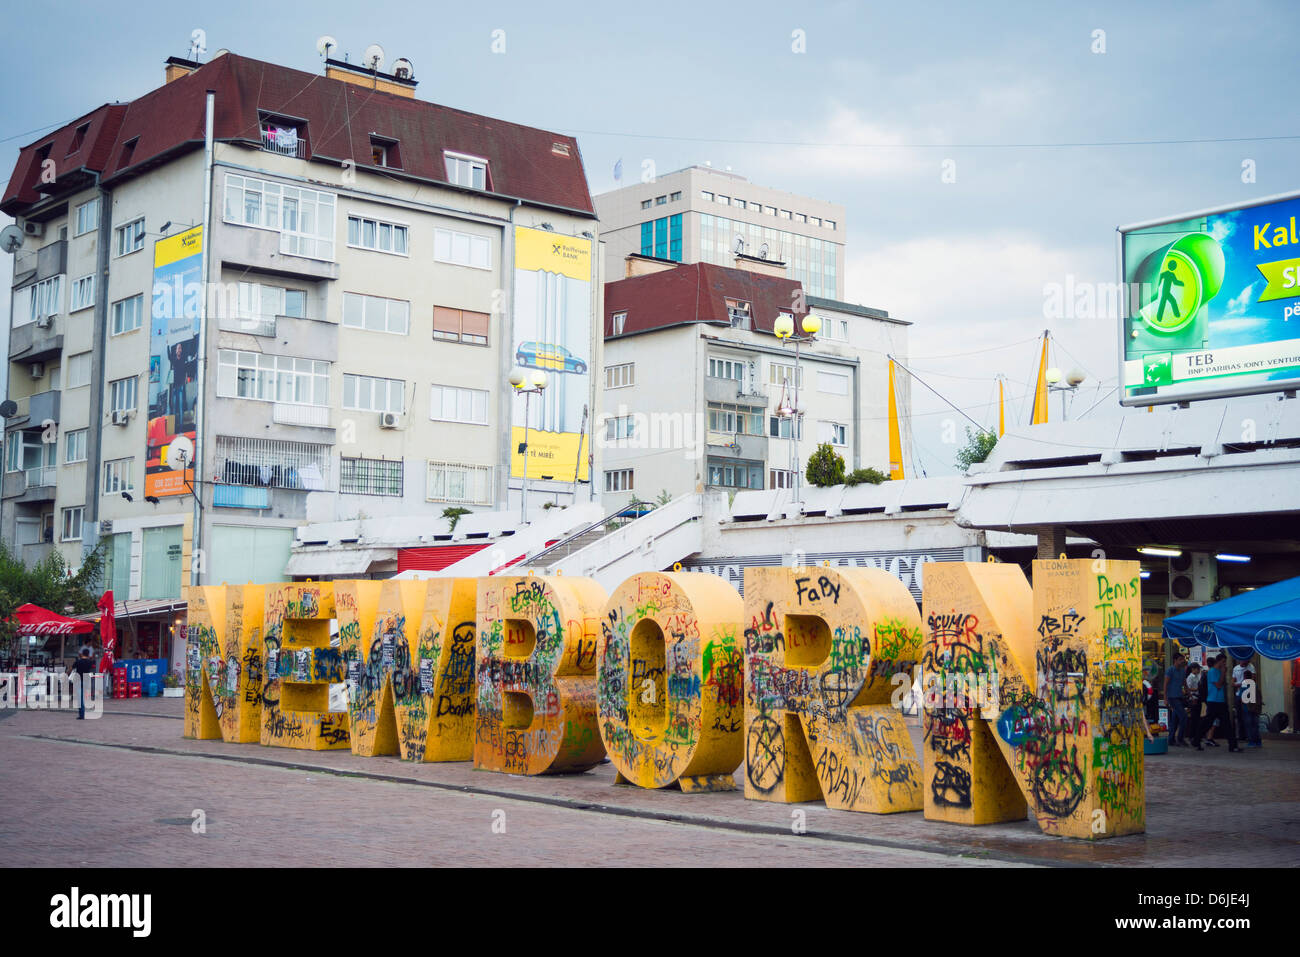 Newborn monument, Pristina, Kosovo, Europe - Stock Image